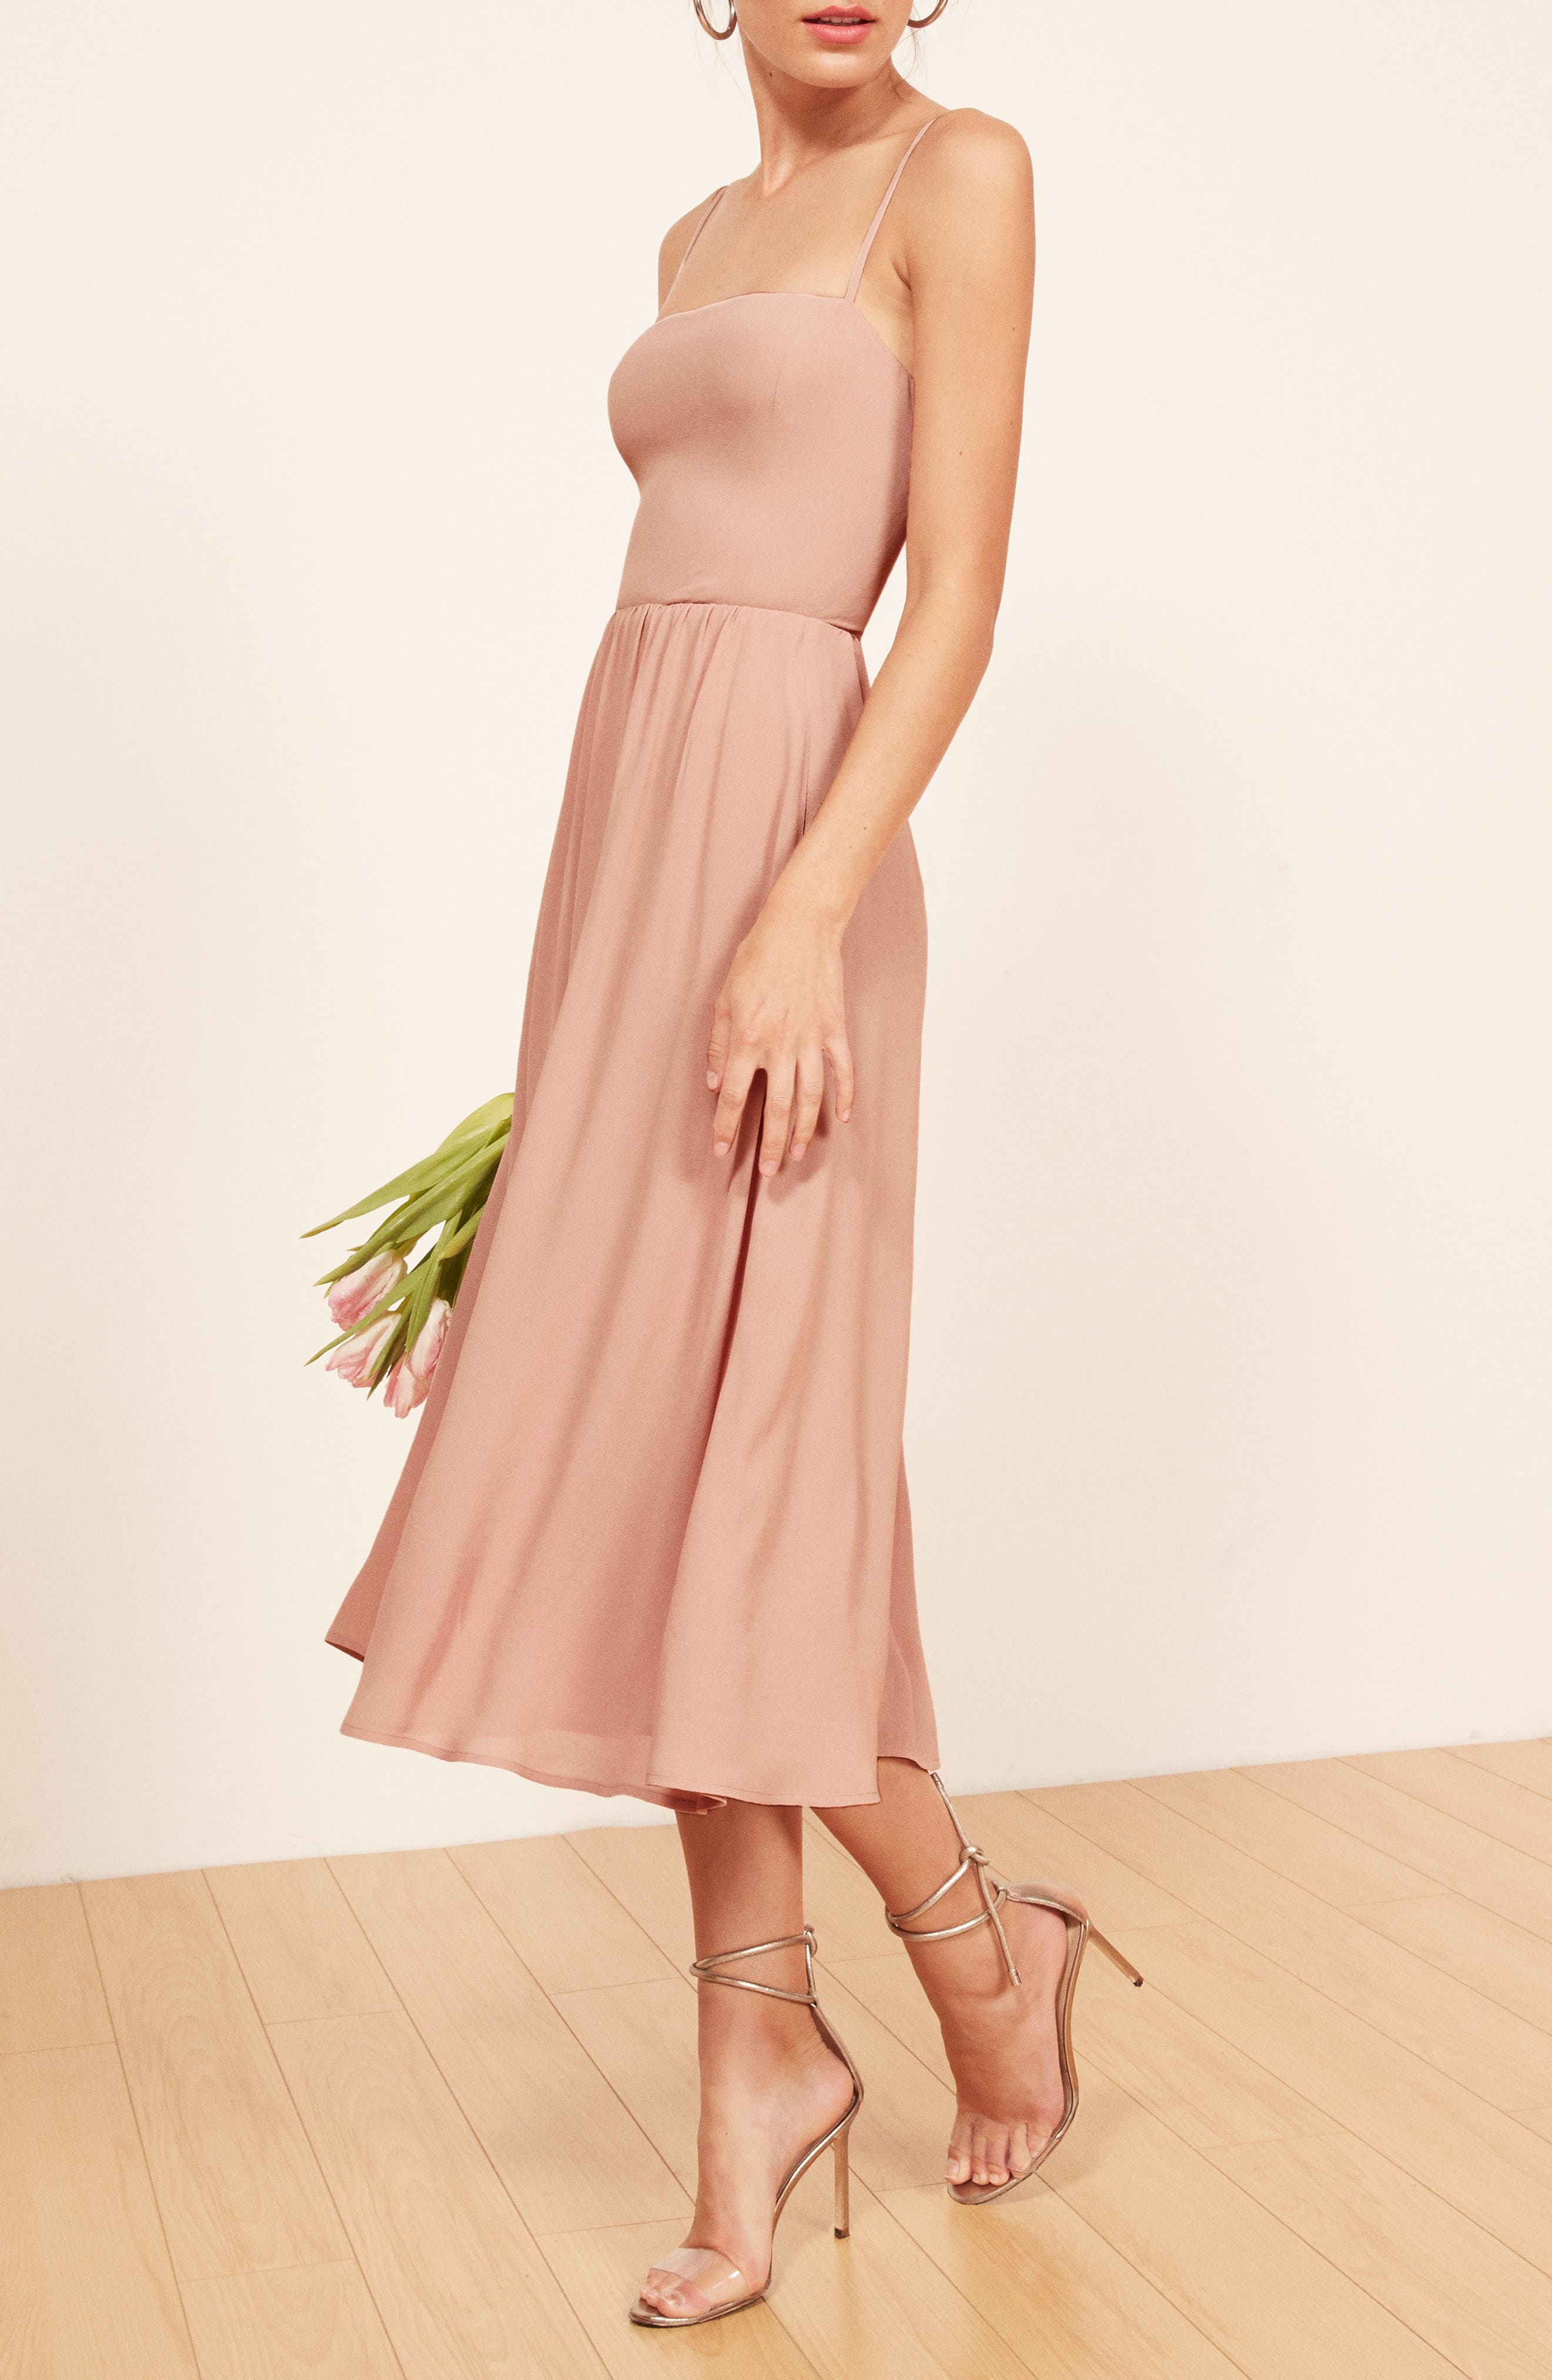 REFORMATION, Rosehip Fit & Flare Dress, Alternate thumbnail 5, color, BLUSH